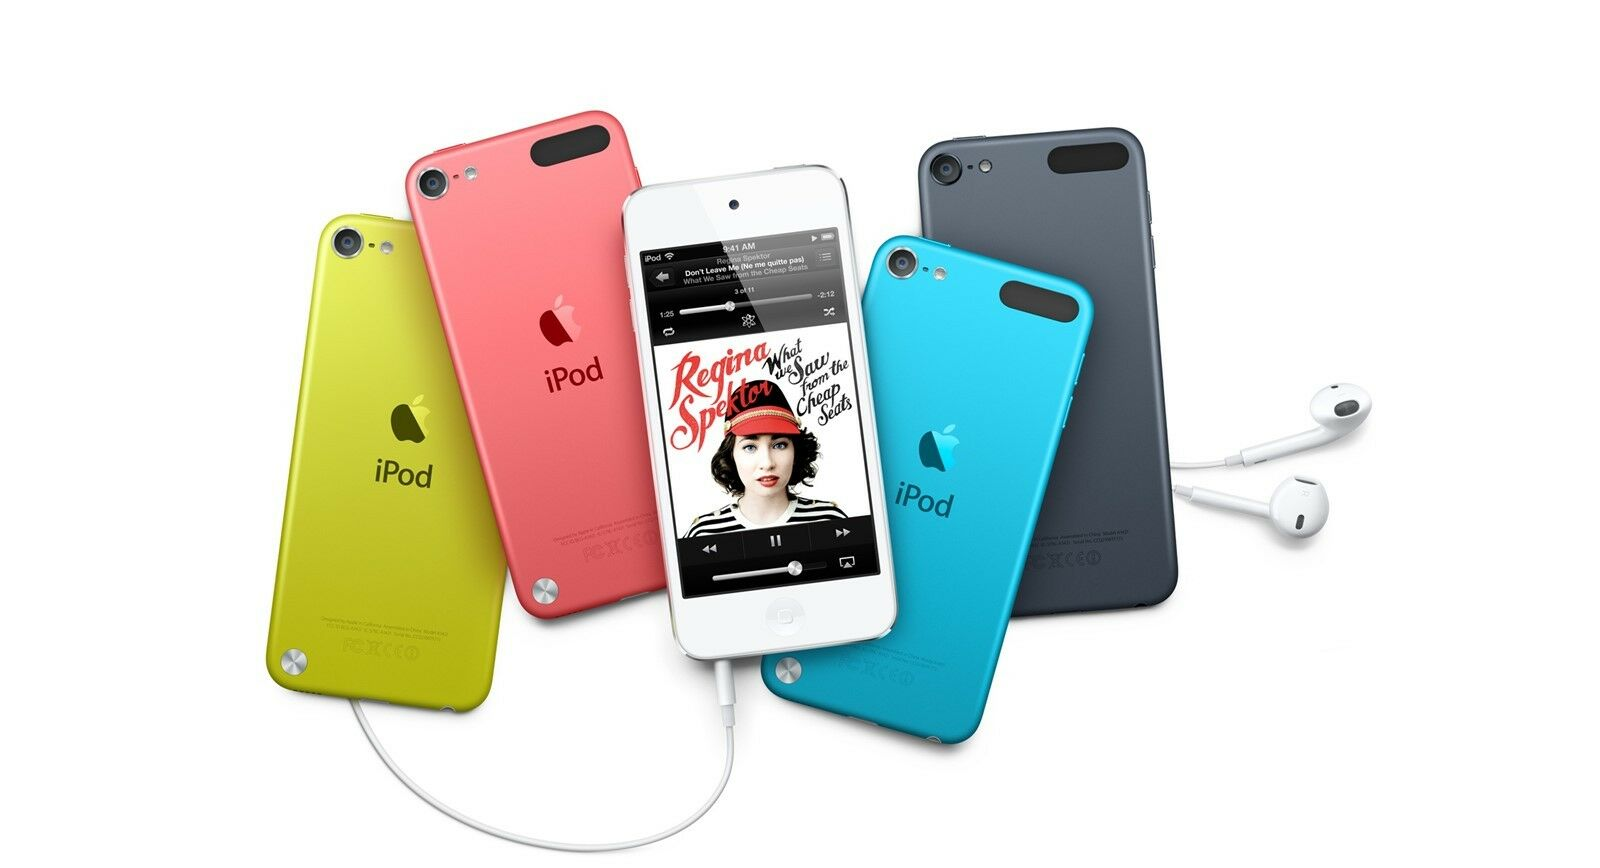 Ipod - Apple Ipod Touch 5th Generation 16GB 32GB 64GB MP3 Verified Tested All Colors